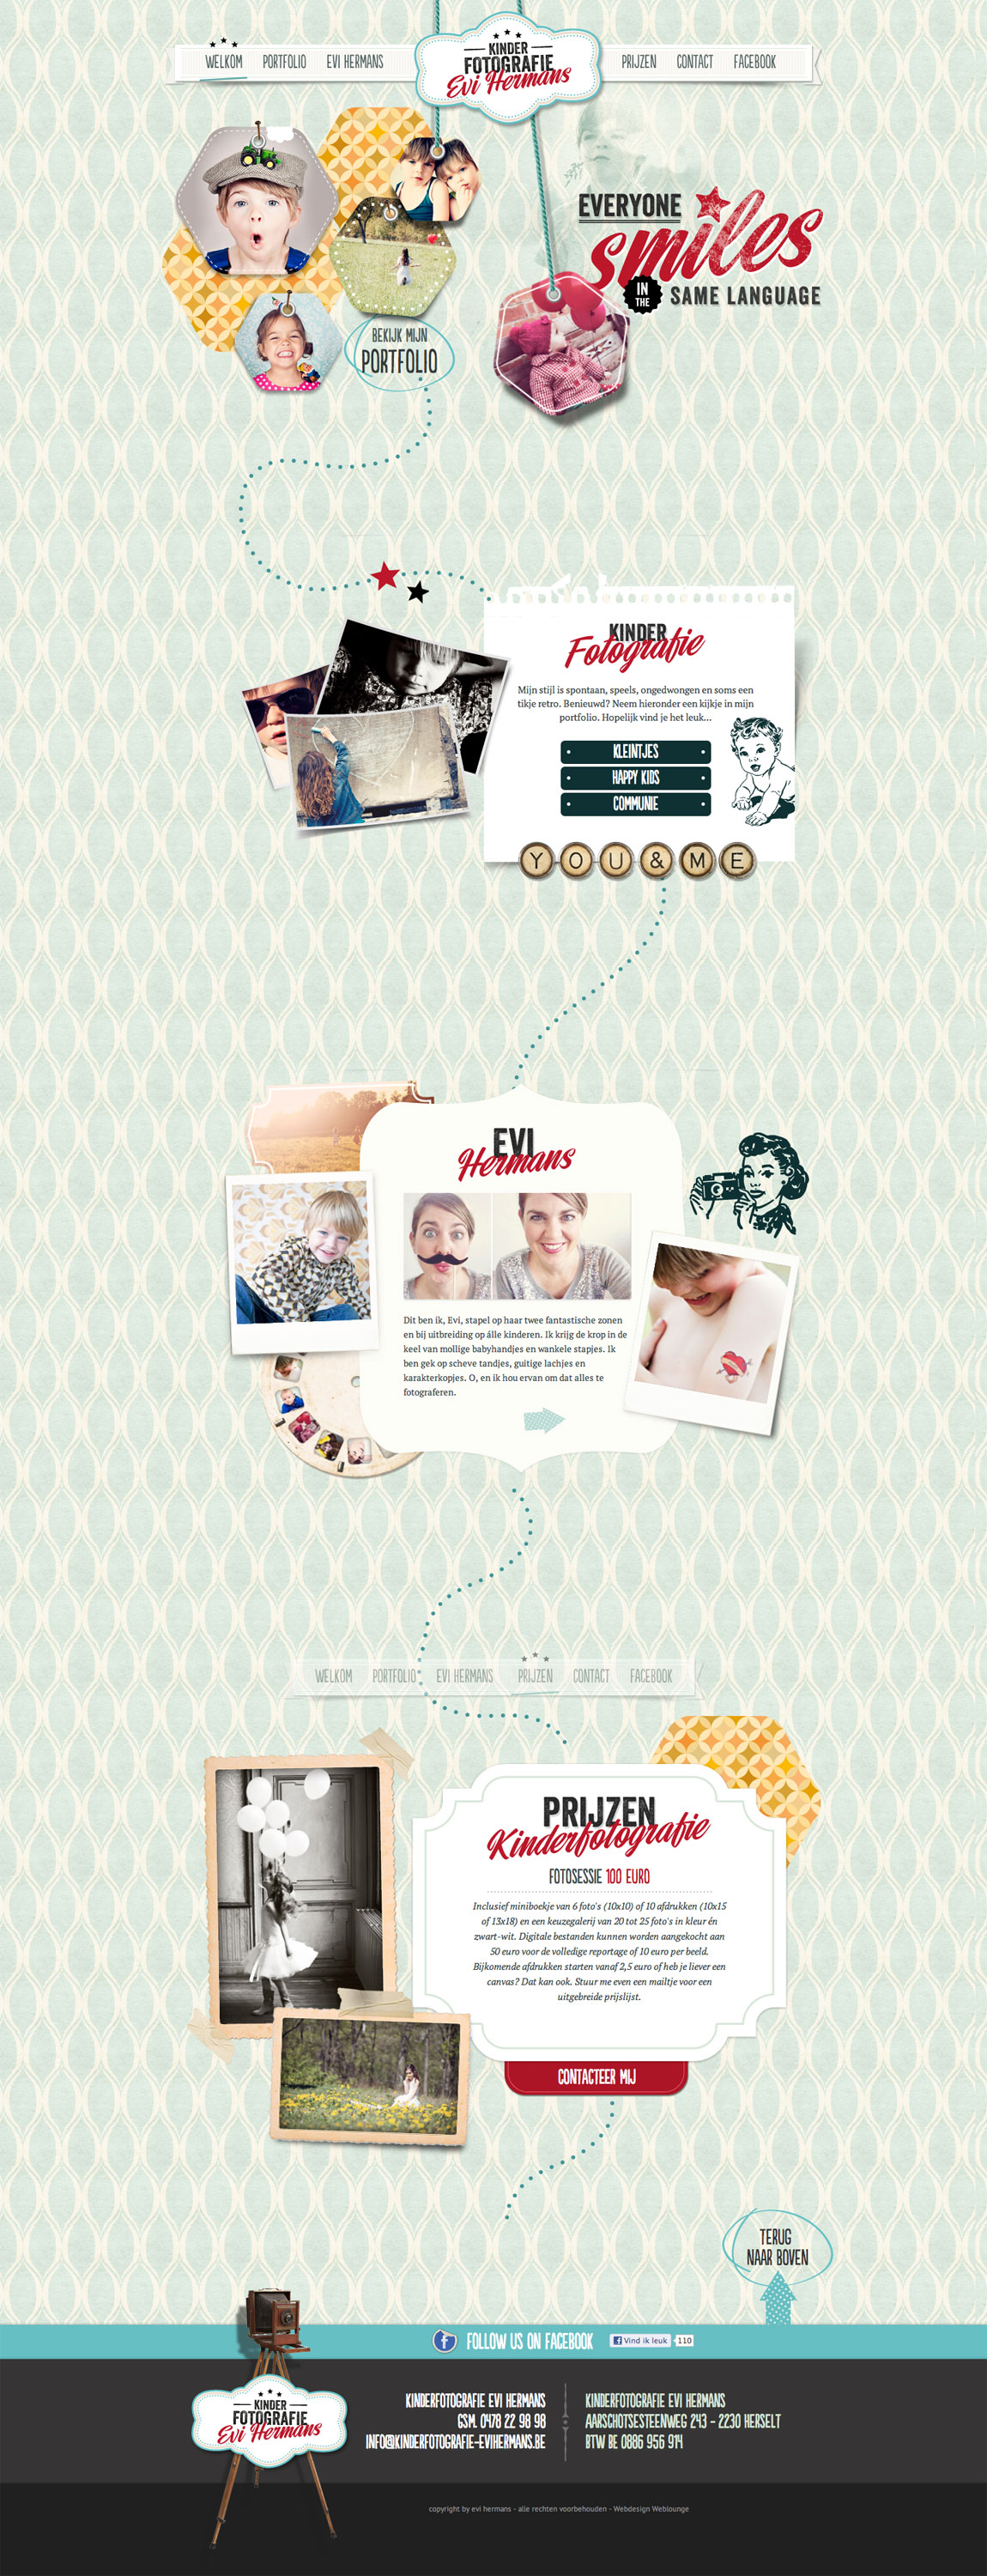 Kinderfotografie Evi Hermans Website Screenshot